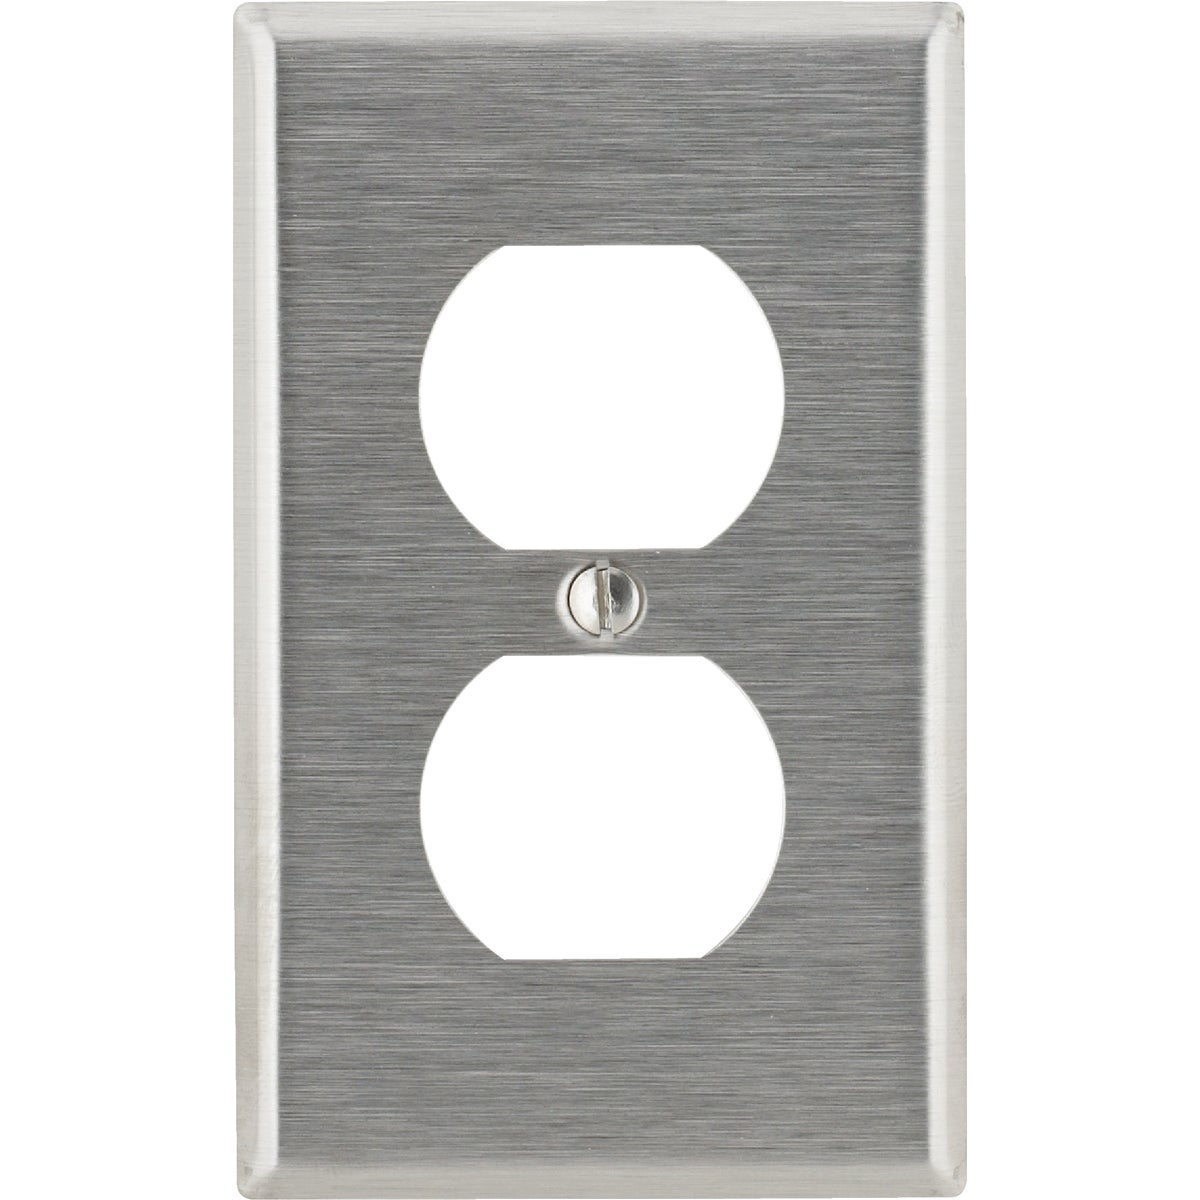 SS DUP OUTLET WALLPLATE - 84003 by Leviton Mfg Co